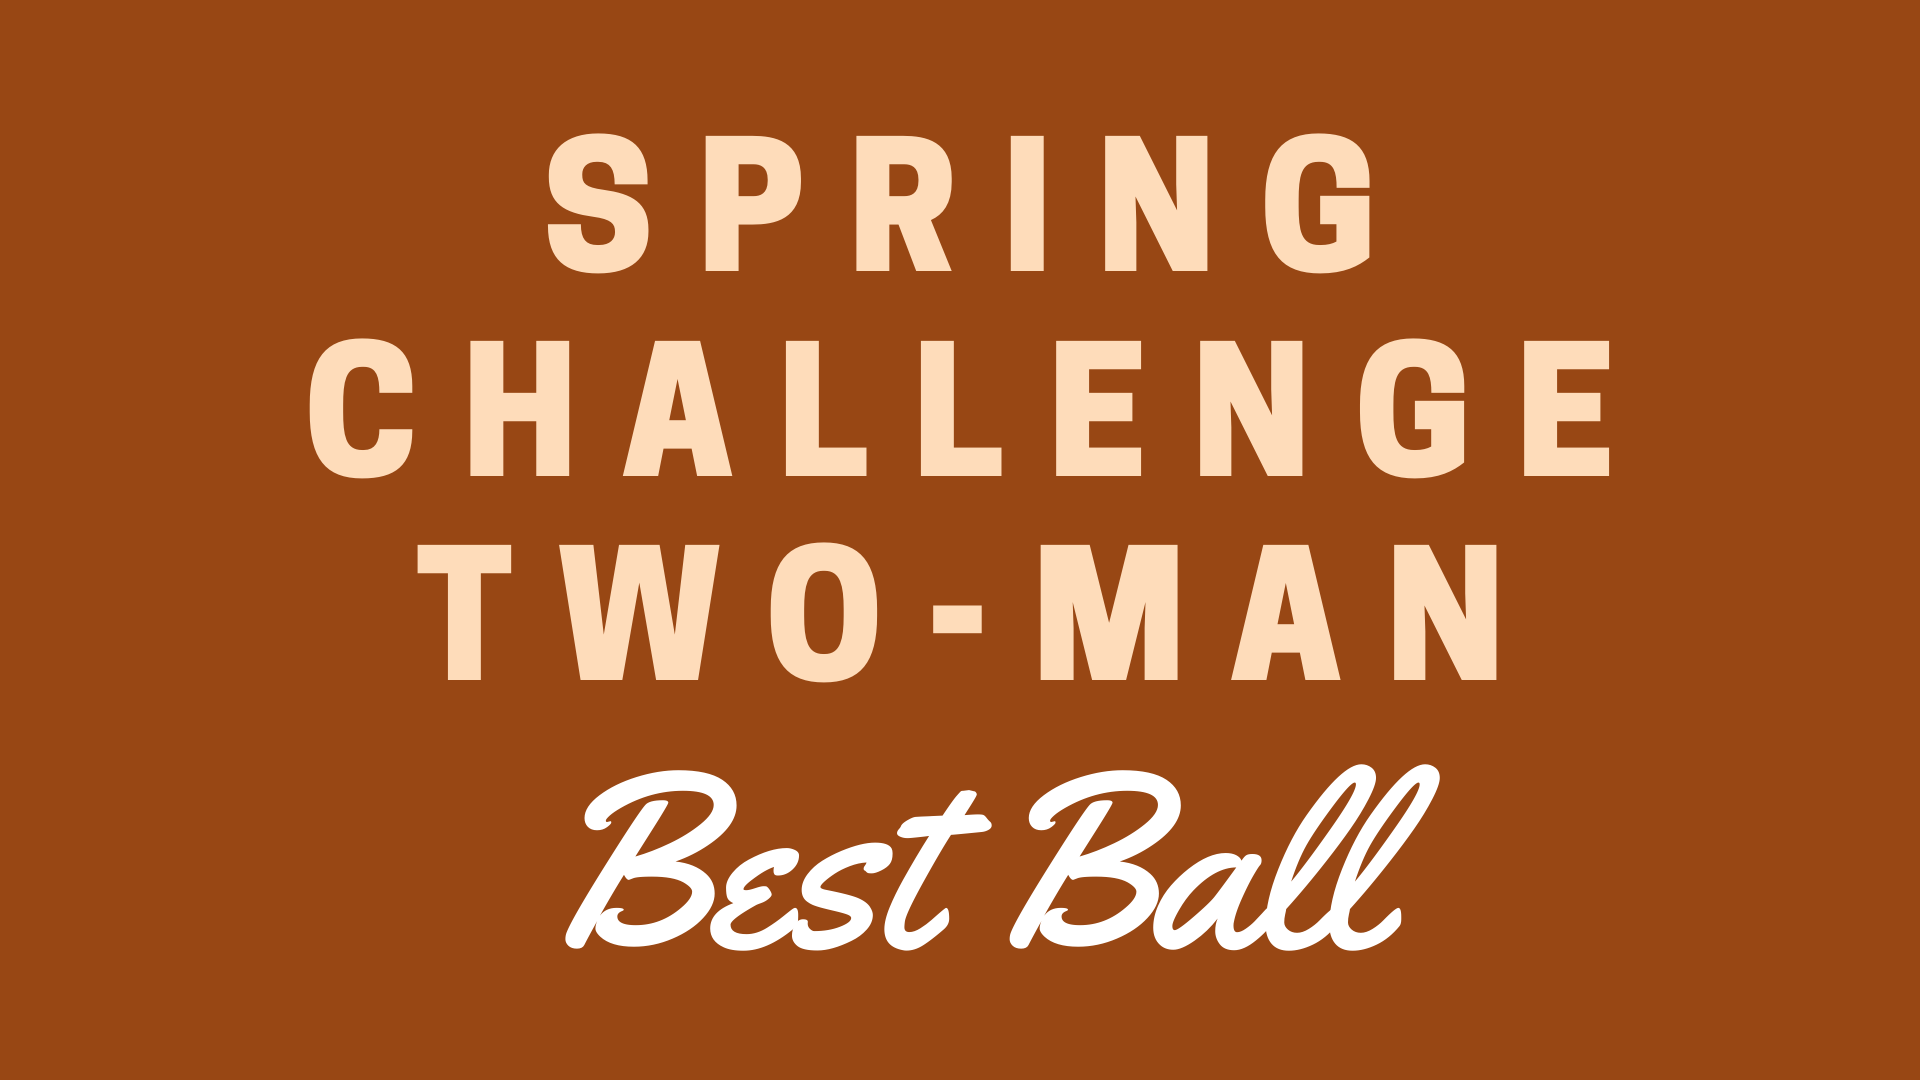 Spring Challenge Two-Man Best Ball